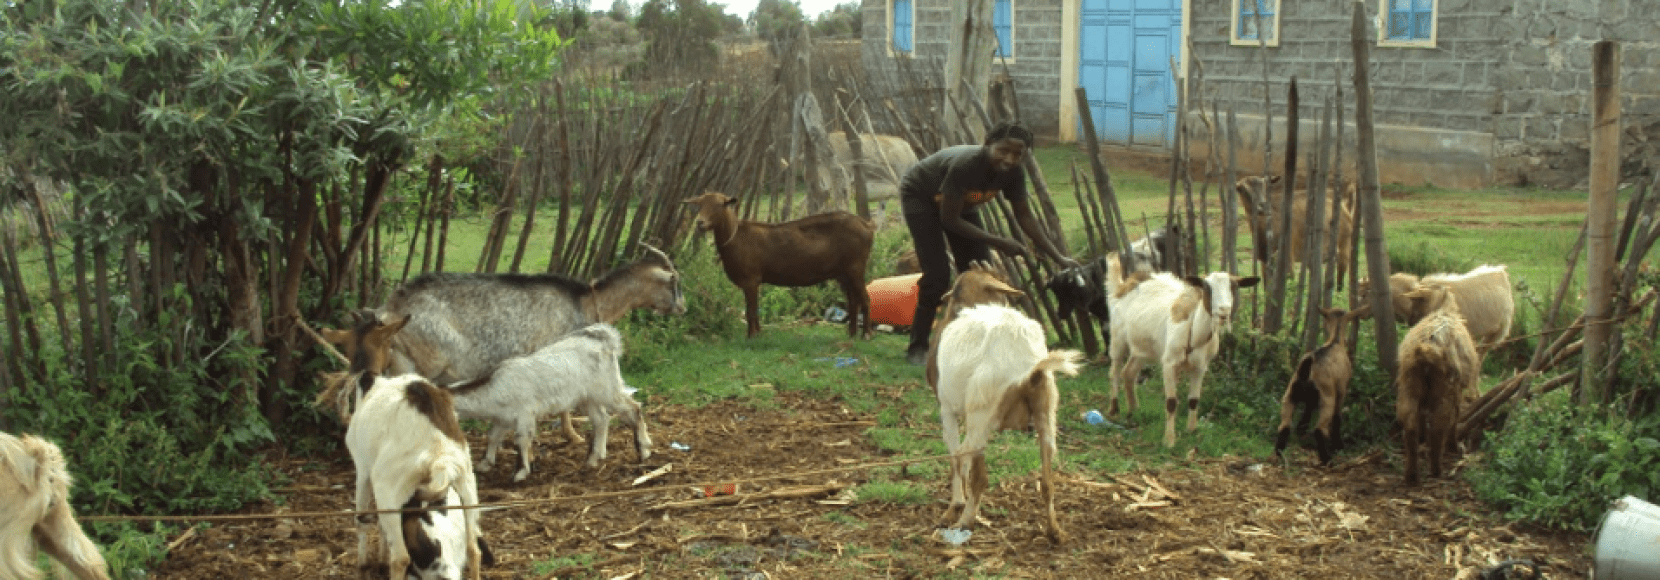 Mary tends to her goats on her property in Kenya